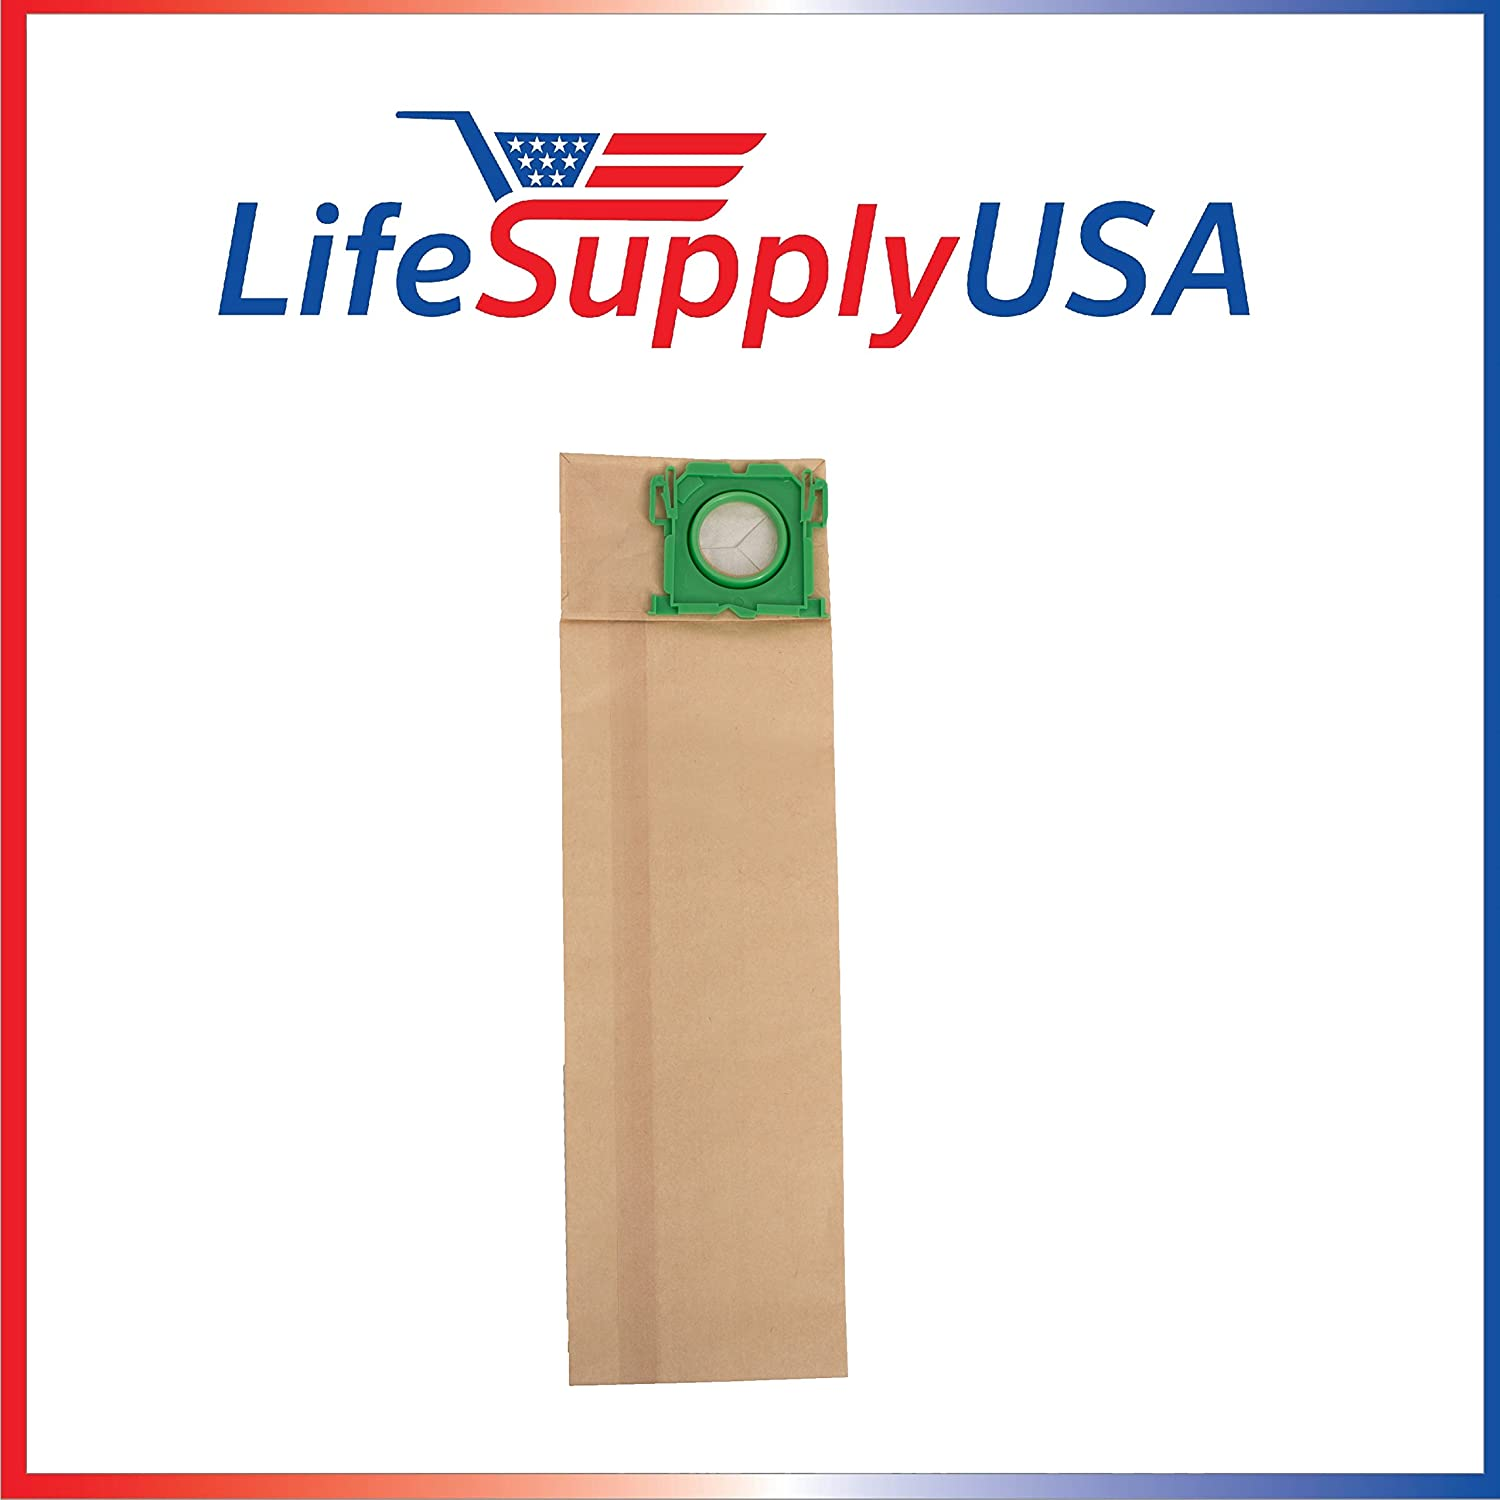 LifeSupplyUSA 10 Pack Vacuum Bags Compatible with Windsor Sensor SR12 SR15 SR18 XP12 Versamatic Plus etc